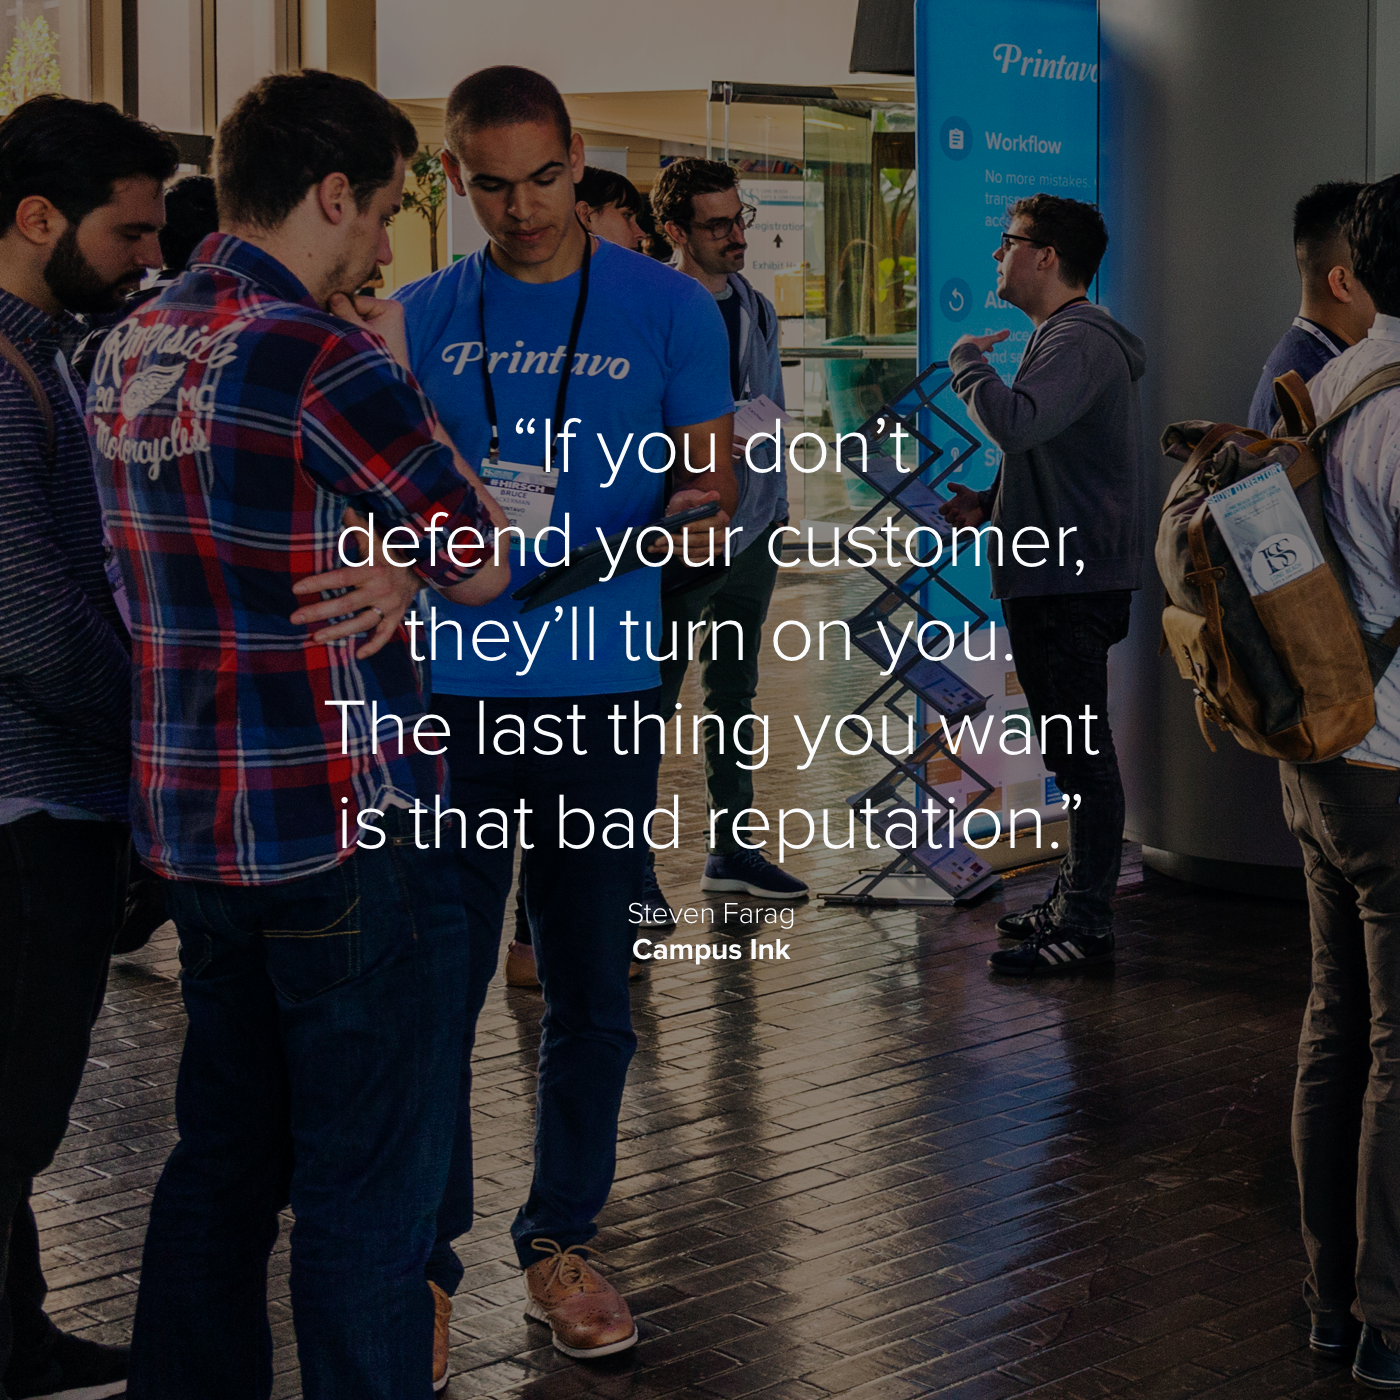 """If you don't defend your customer, they'll turn on you"" text over darkened image of people discussing Printavo"